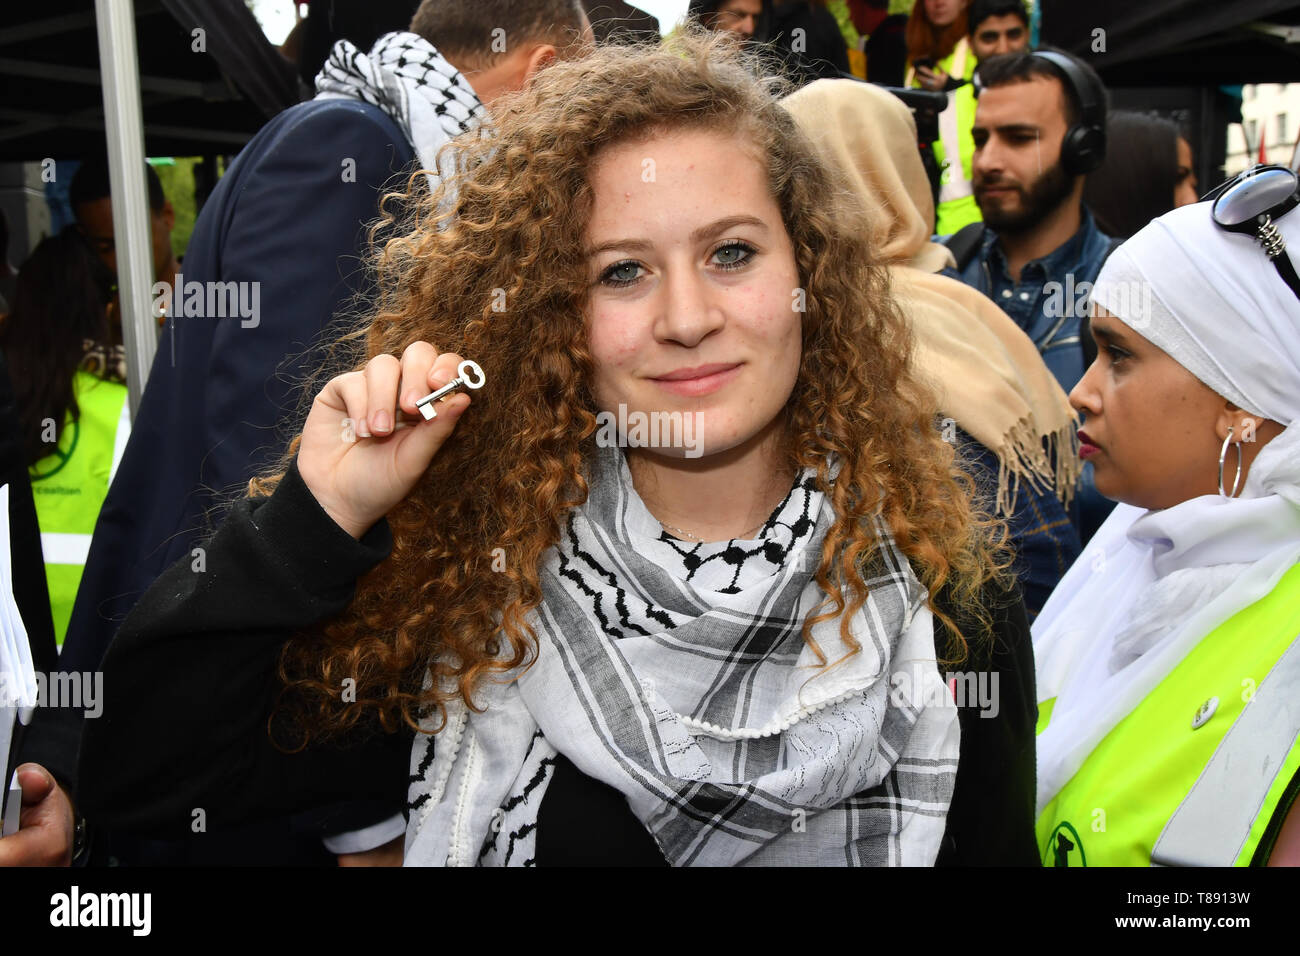 Speaker Ahed Tamimi is a Palestinian continues rally outside Downing street of the Nakba: National Demonstration for Palestine commemorating 71 years since the Nakba (catastrophe). On 15th May 1948 over 750,000 Palestinians were expelled from their land during the establishment of the state of Israel ahead of the Nakba (catastrophe). on this day 15th May 1948 march through central on 11 May 2019, London, UK. - Stock Image